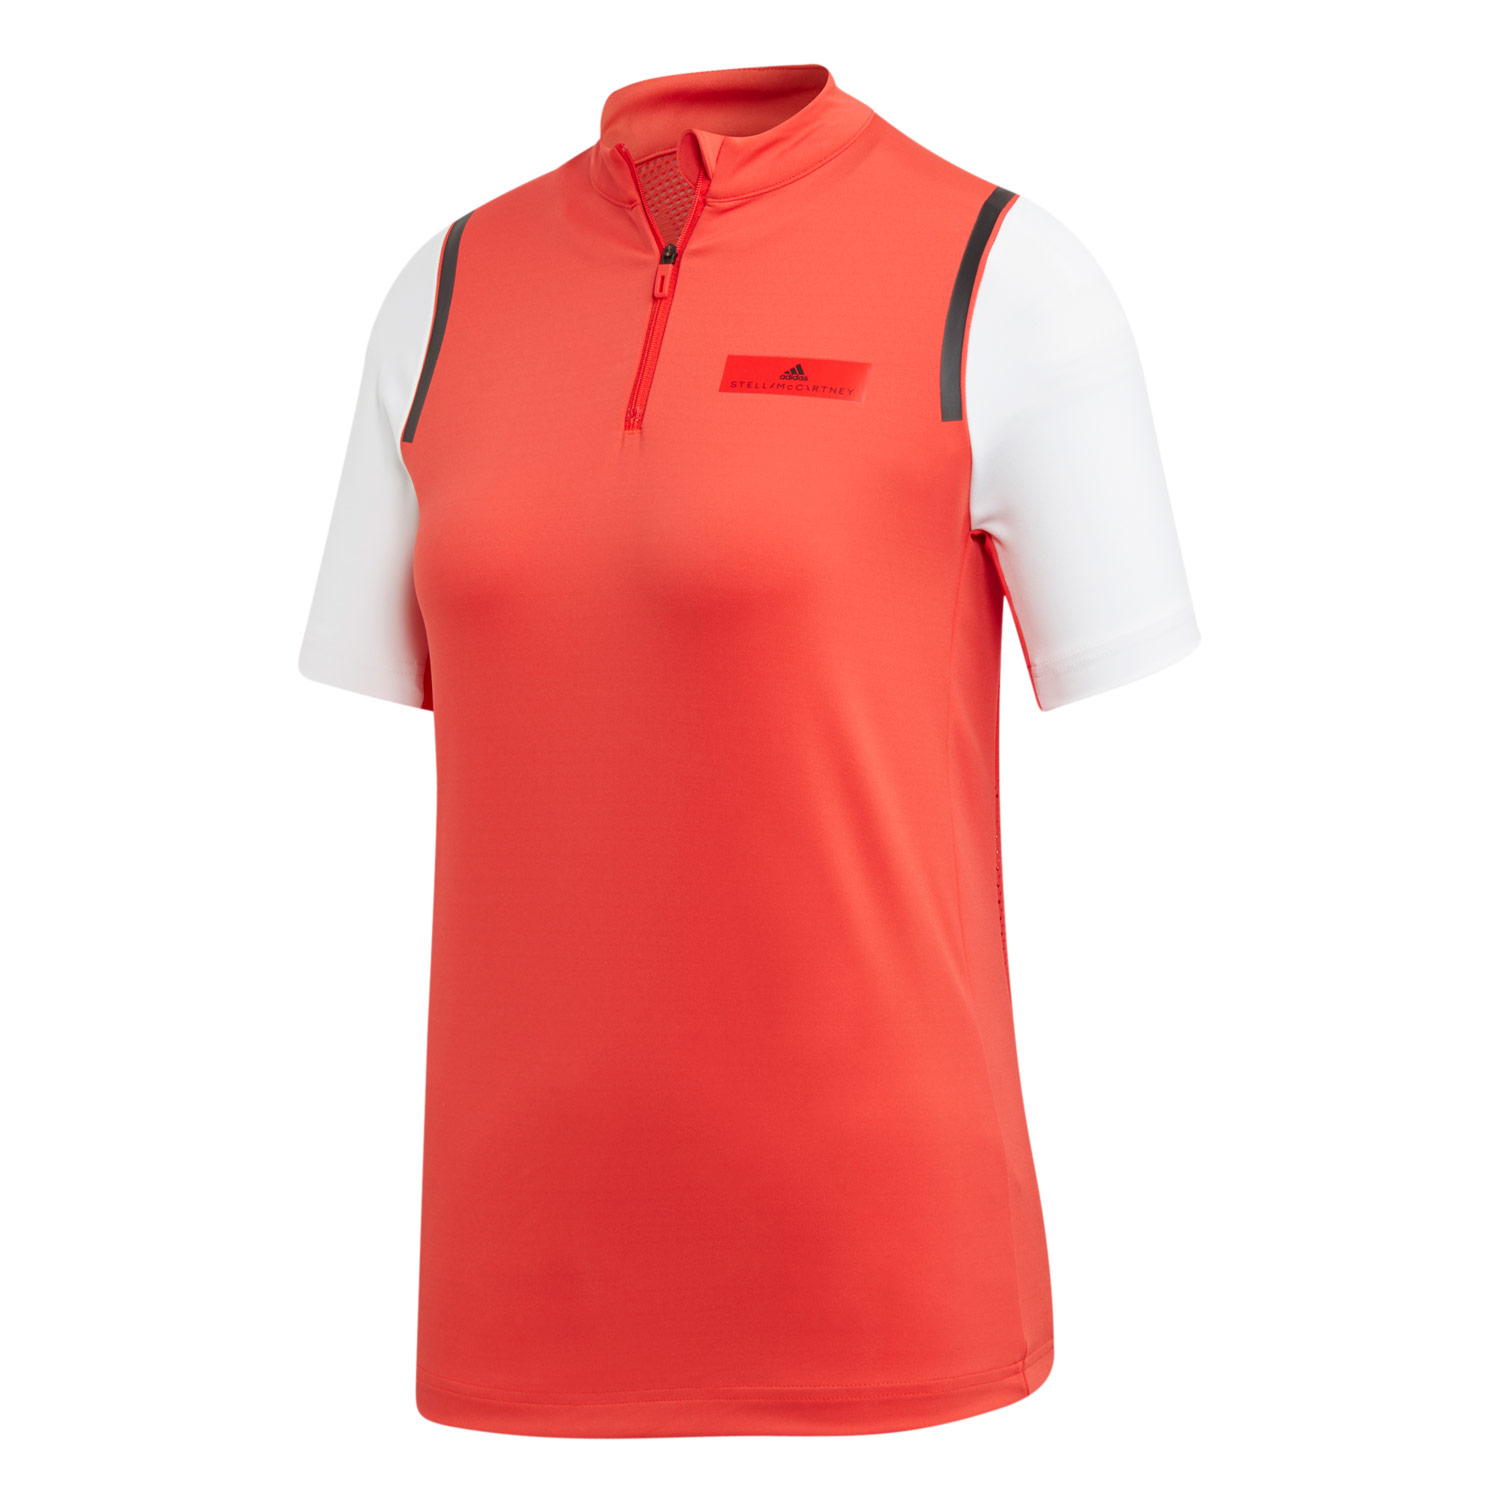 Adidas Stella McCartney Camiseta de Tenis Niño Active Red